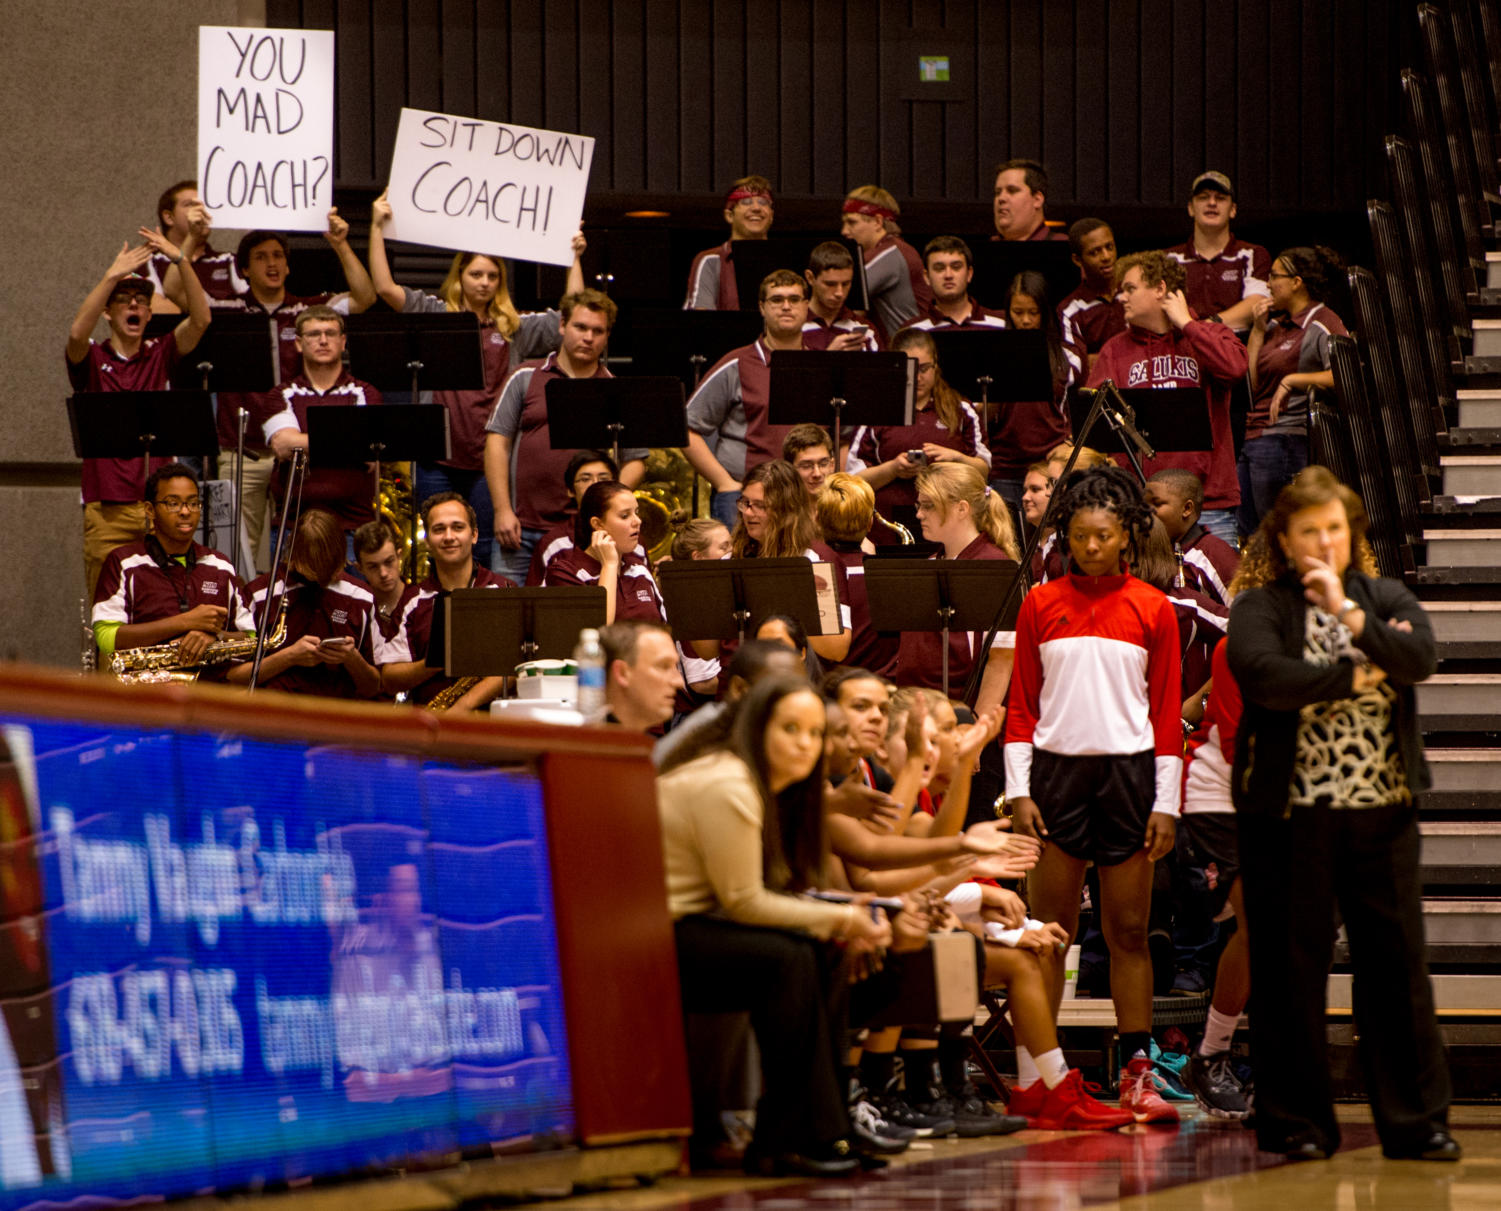 Members+of+the+volleyball+band+taunt+SIUE+women%27s+basketball+coach+Paula+Buscher+Monday%2C+Nov.+27%2C+2017%2C+during+the+Salukis%27+57-53+loss+to+the+SIU+Edwardsville+Cougars+at+SIU+Arena.+%28Brian+Mu%C3%B1oz+%7C+%40BrianMMunoz%29